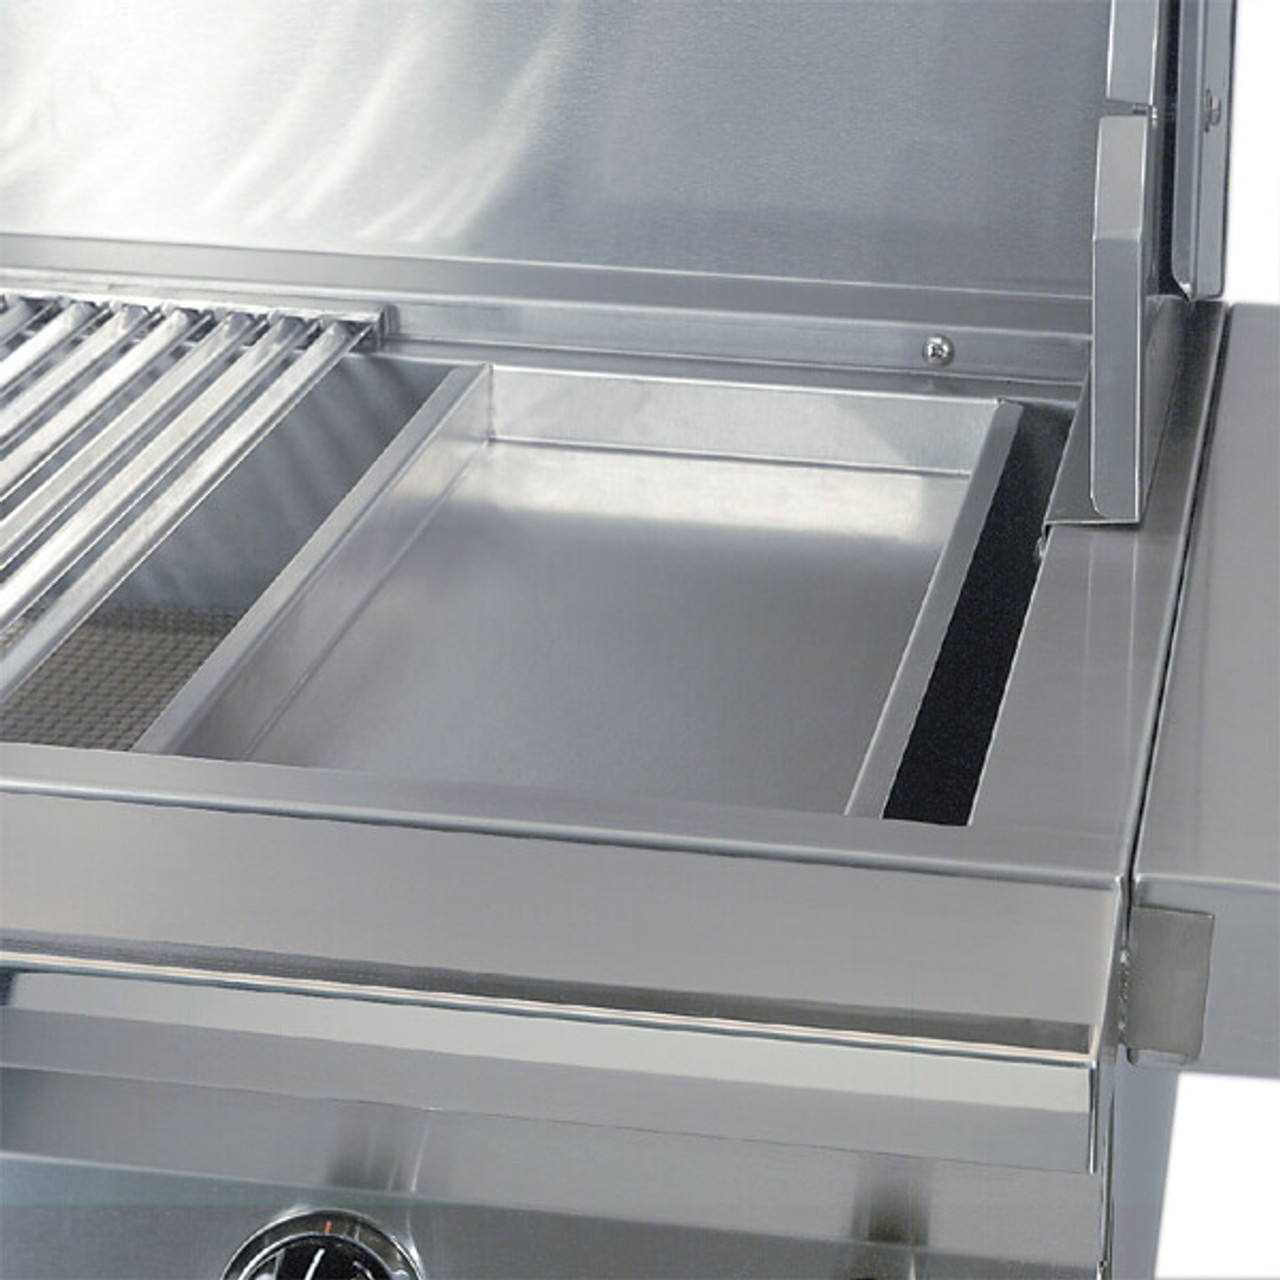 BBQ Tray In grill